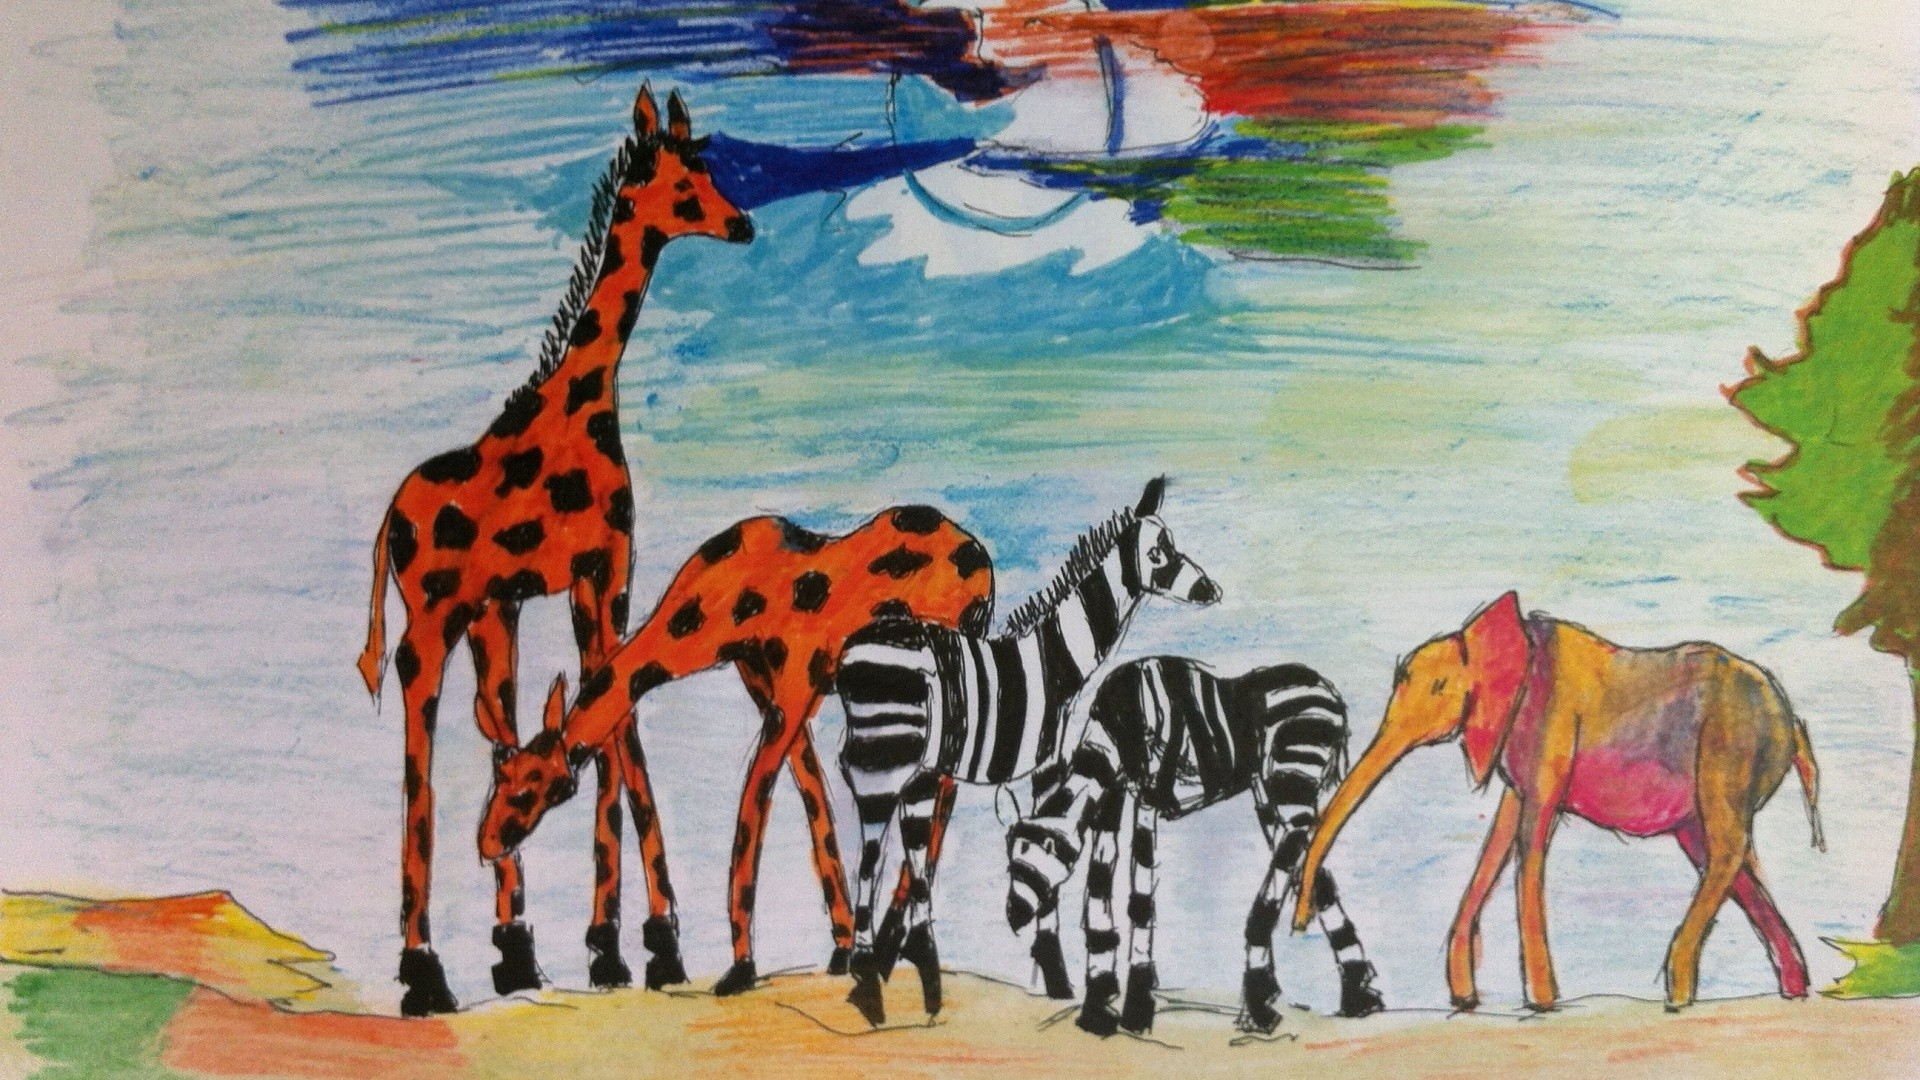 1920x1080 Africa, Arts, Drawing, African Art, African Art Drawing, African Wild  Animals